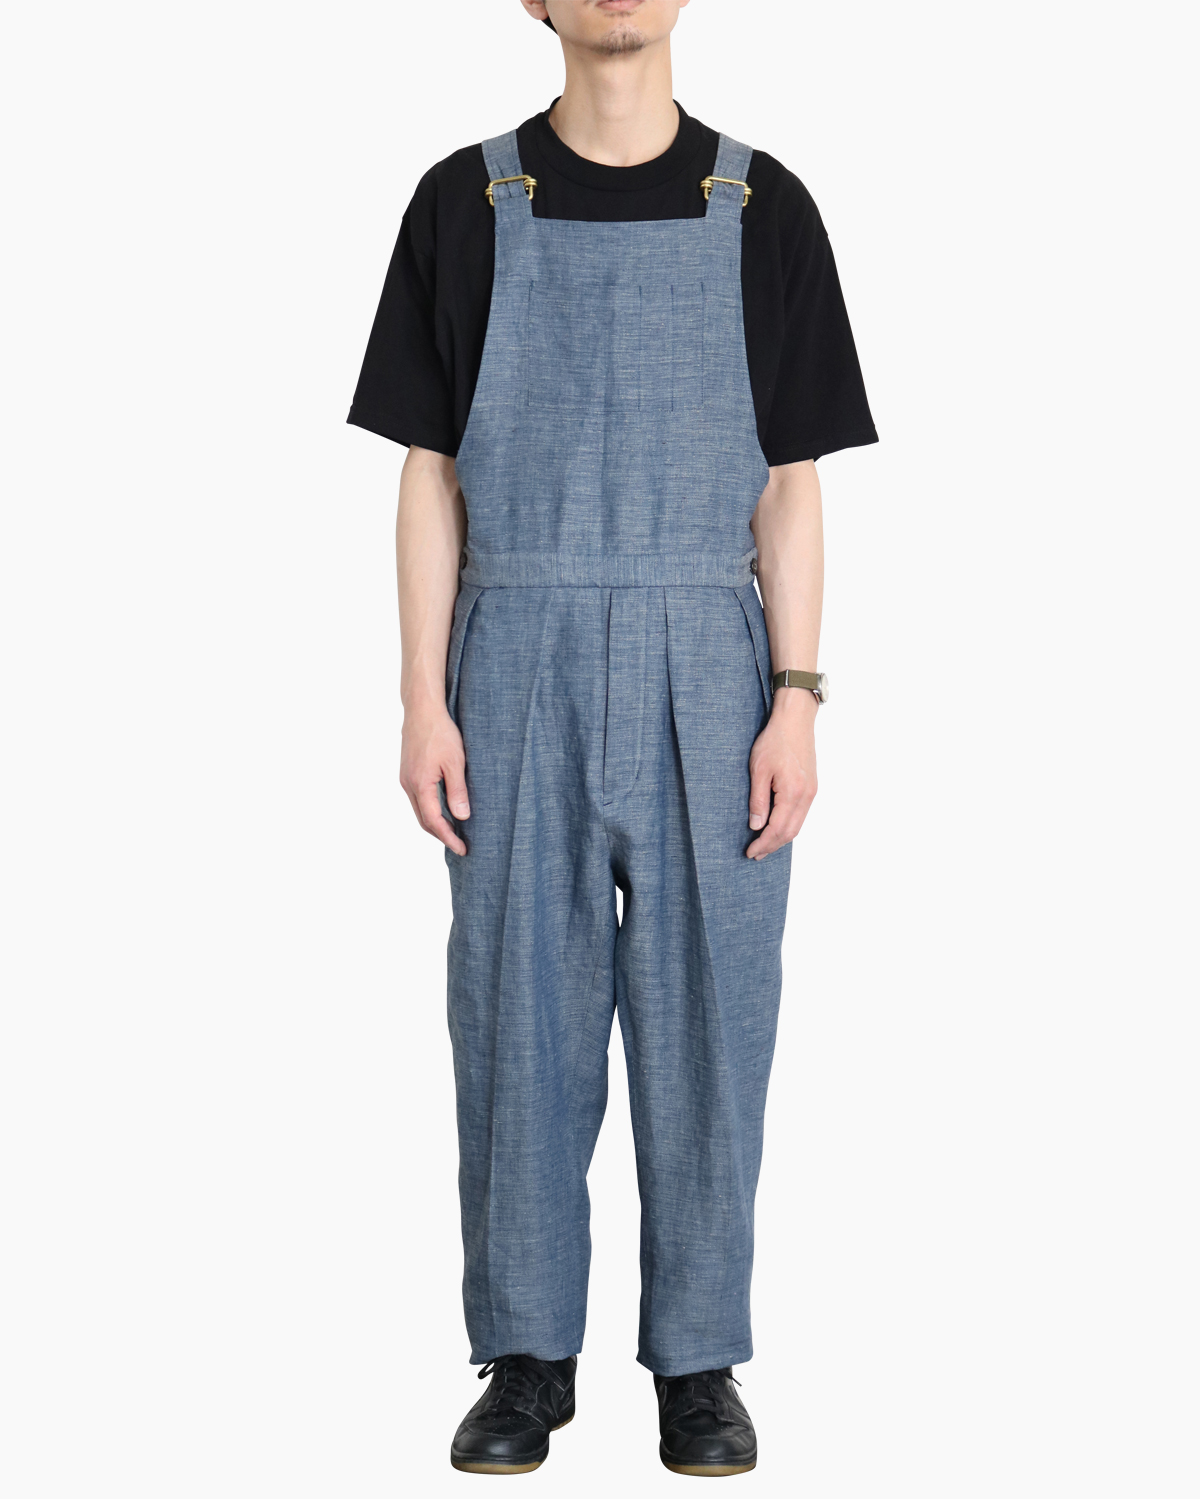 LINEN CHAMBRAY|OVERALL - BLUE|NEAT